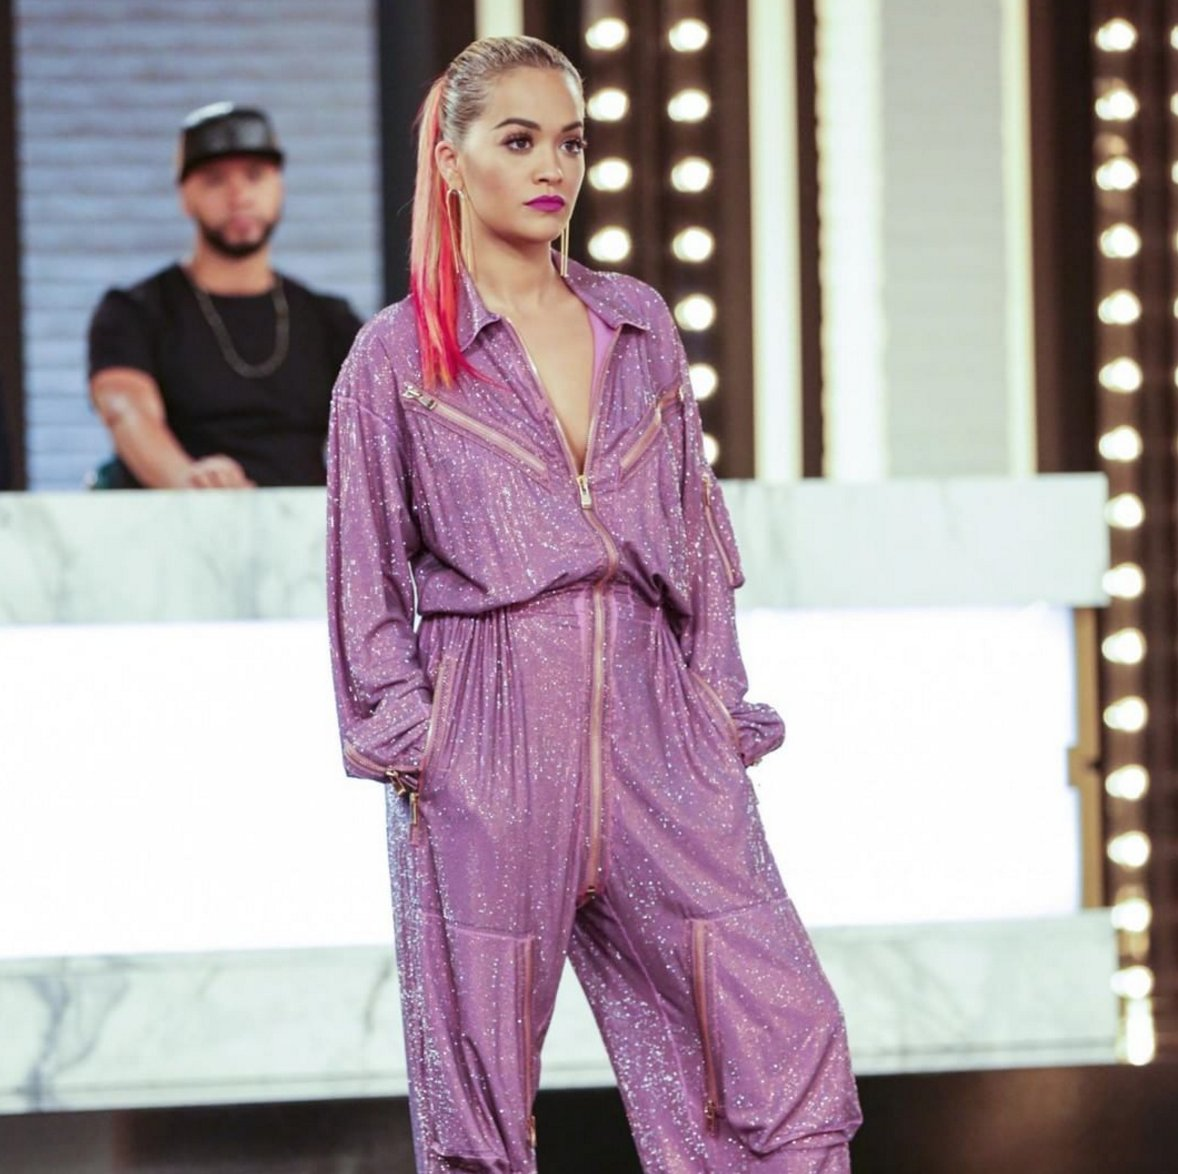 #ANTM starts right now! RT if you're watching + tweeting along with @A...